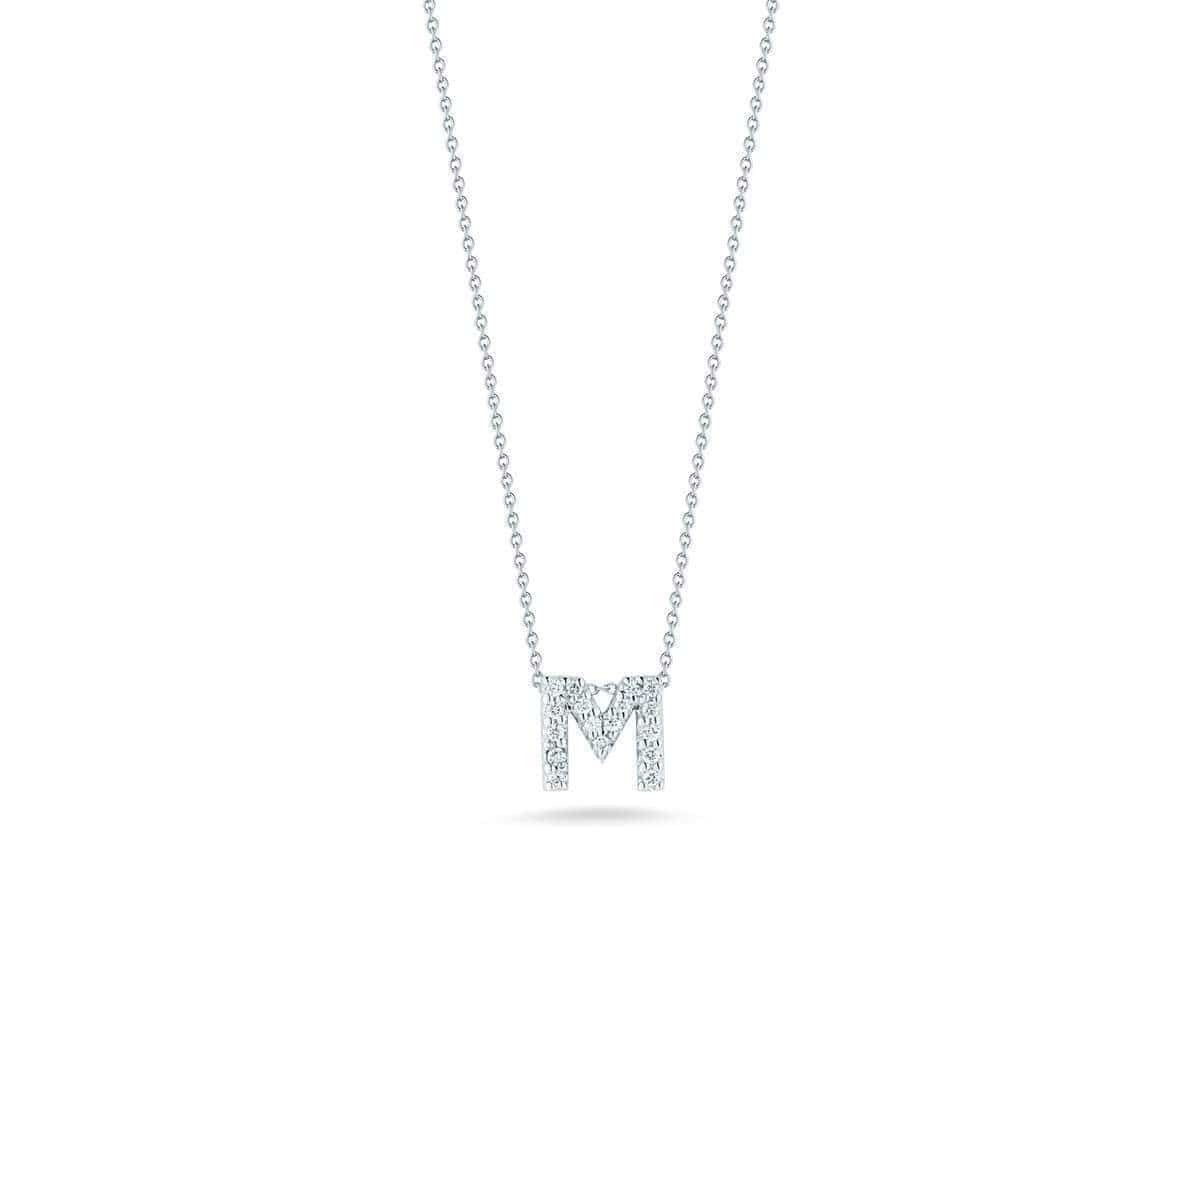 18k White Gold & Diamond Love Letter M Necklace - 001634AWCHXM-Roberto Coin-Renee Taylor Gallery